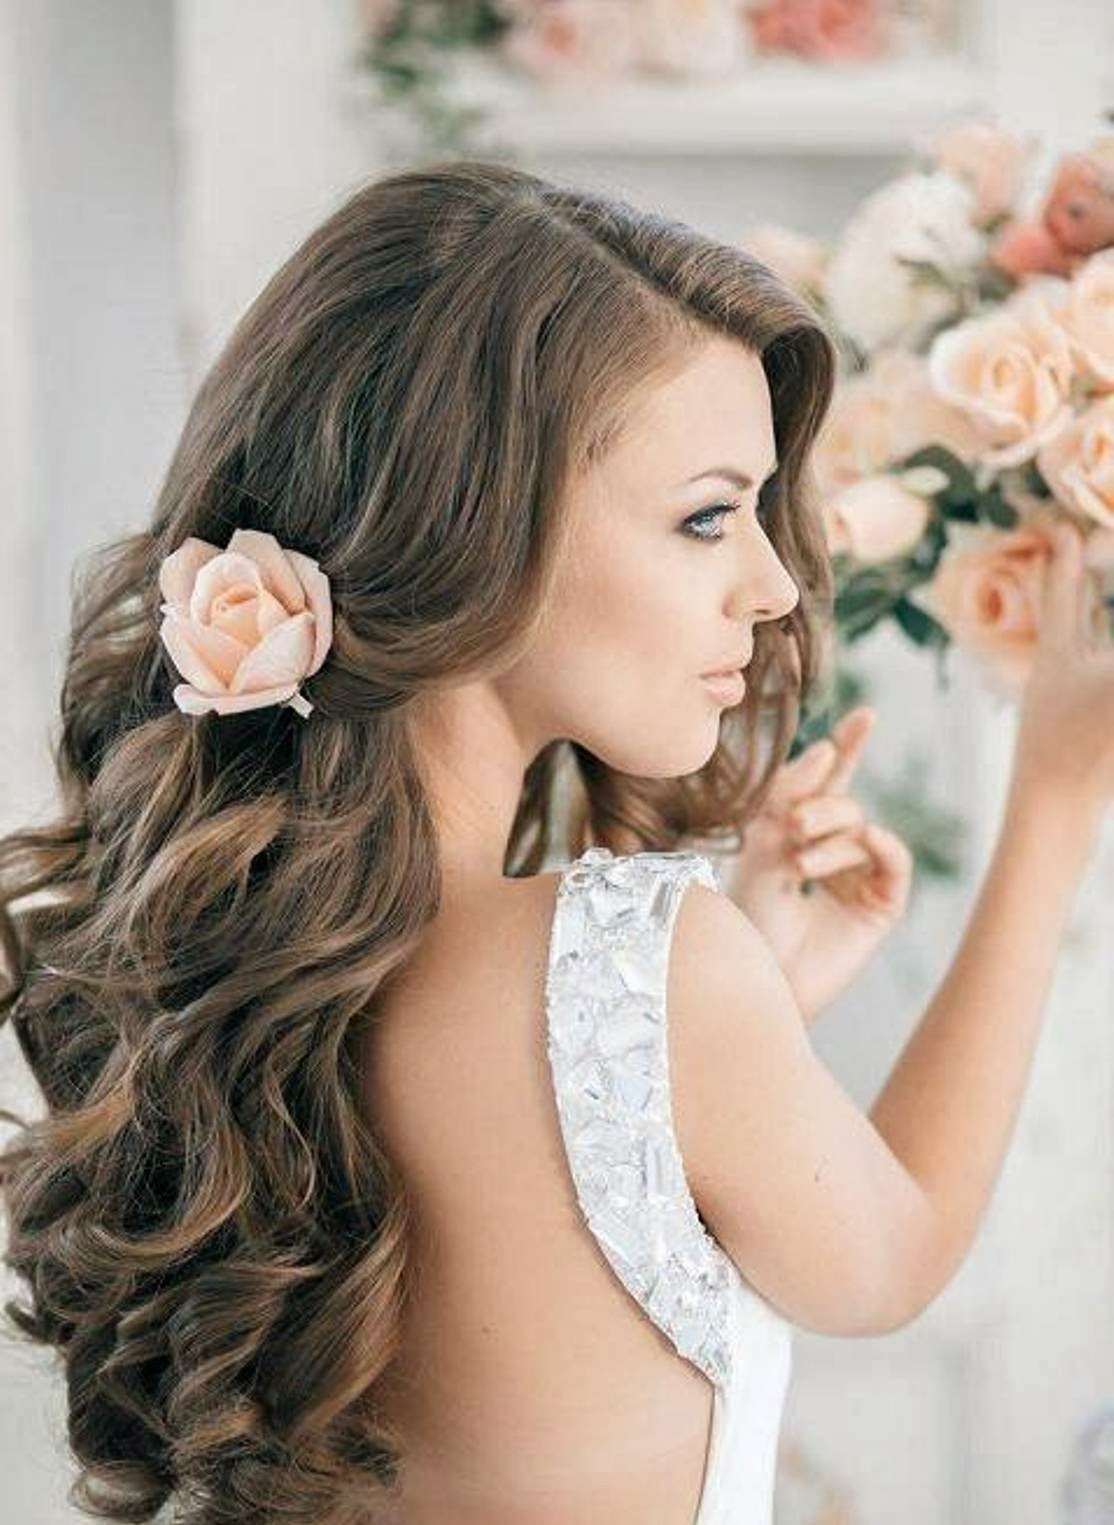 Hairstyles For Long Hair Female Hair Fashion Style